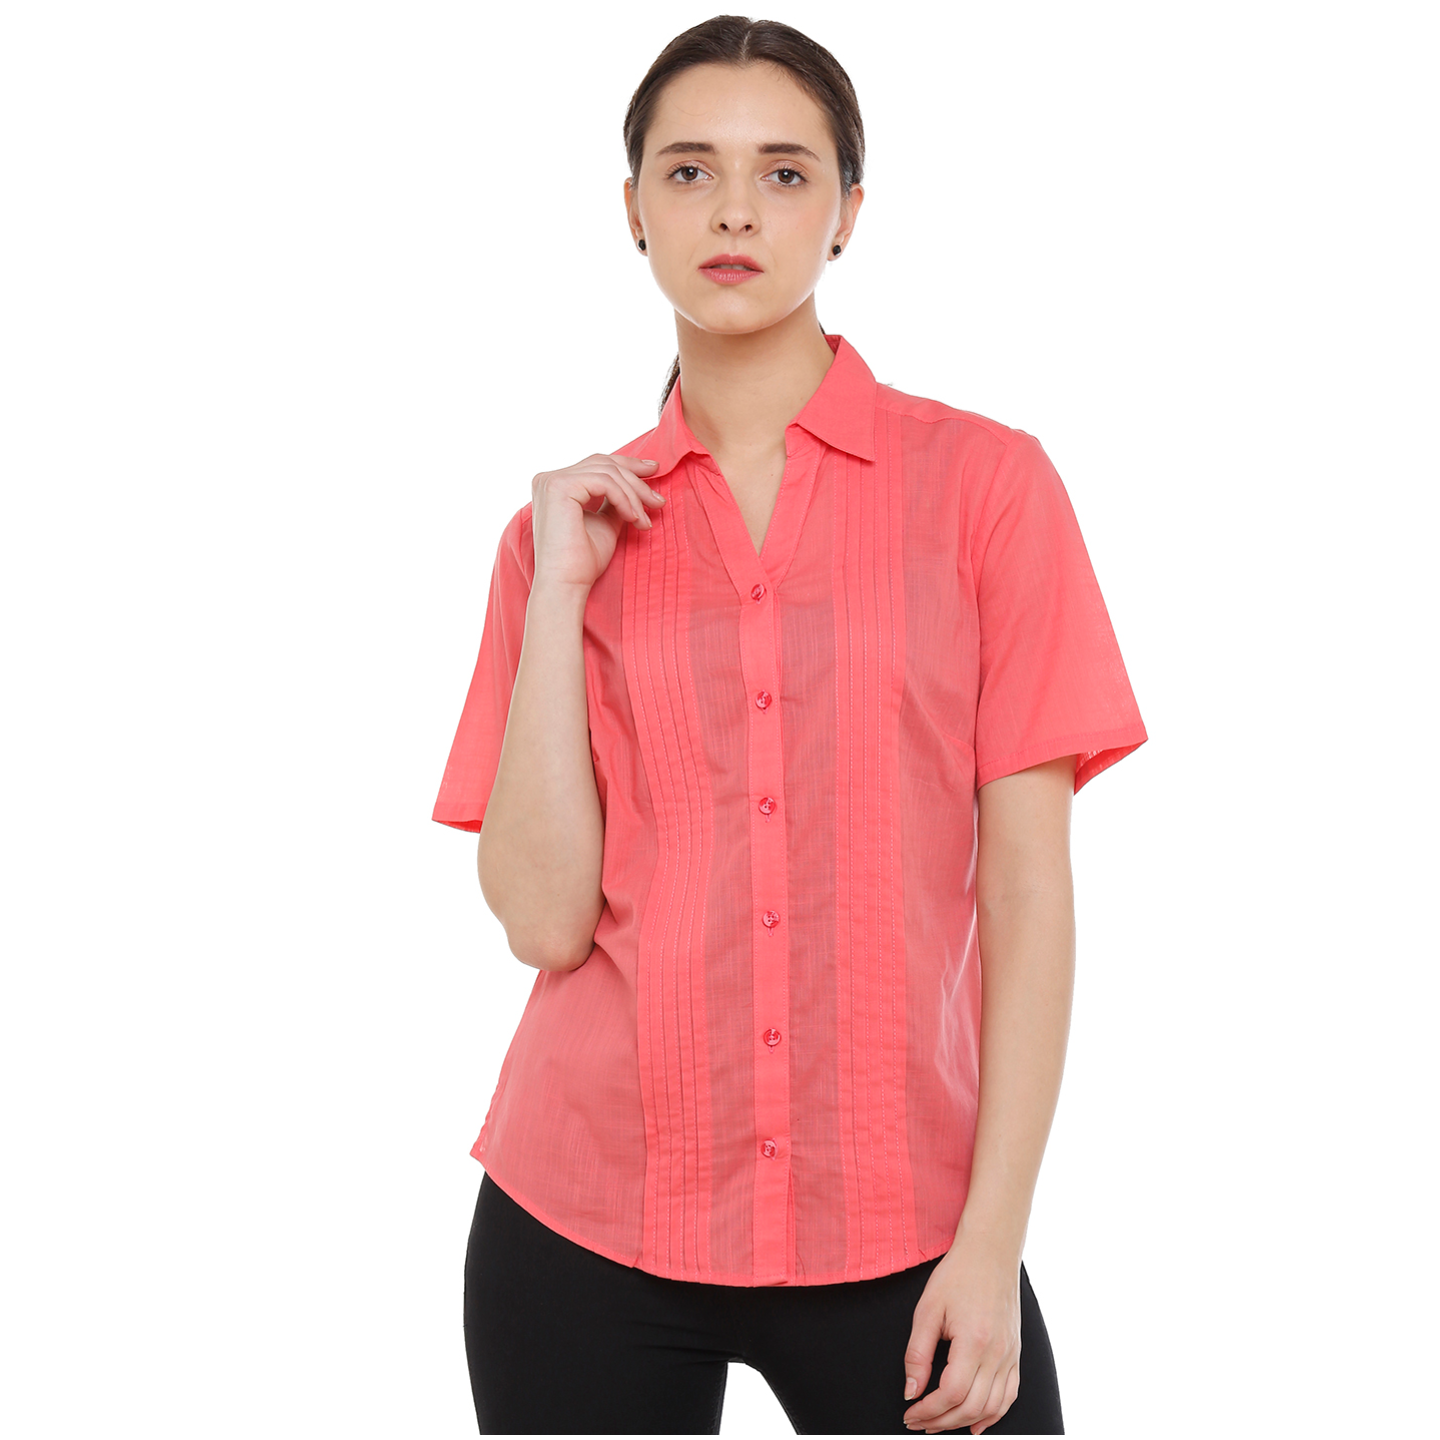 Double TWO Womens Cotton Pleated Pink Shirt